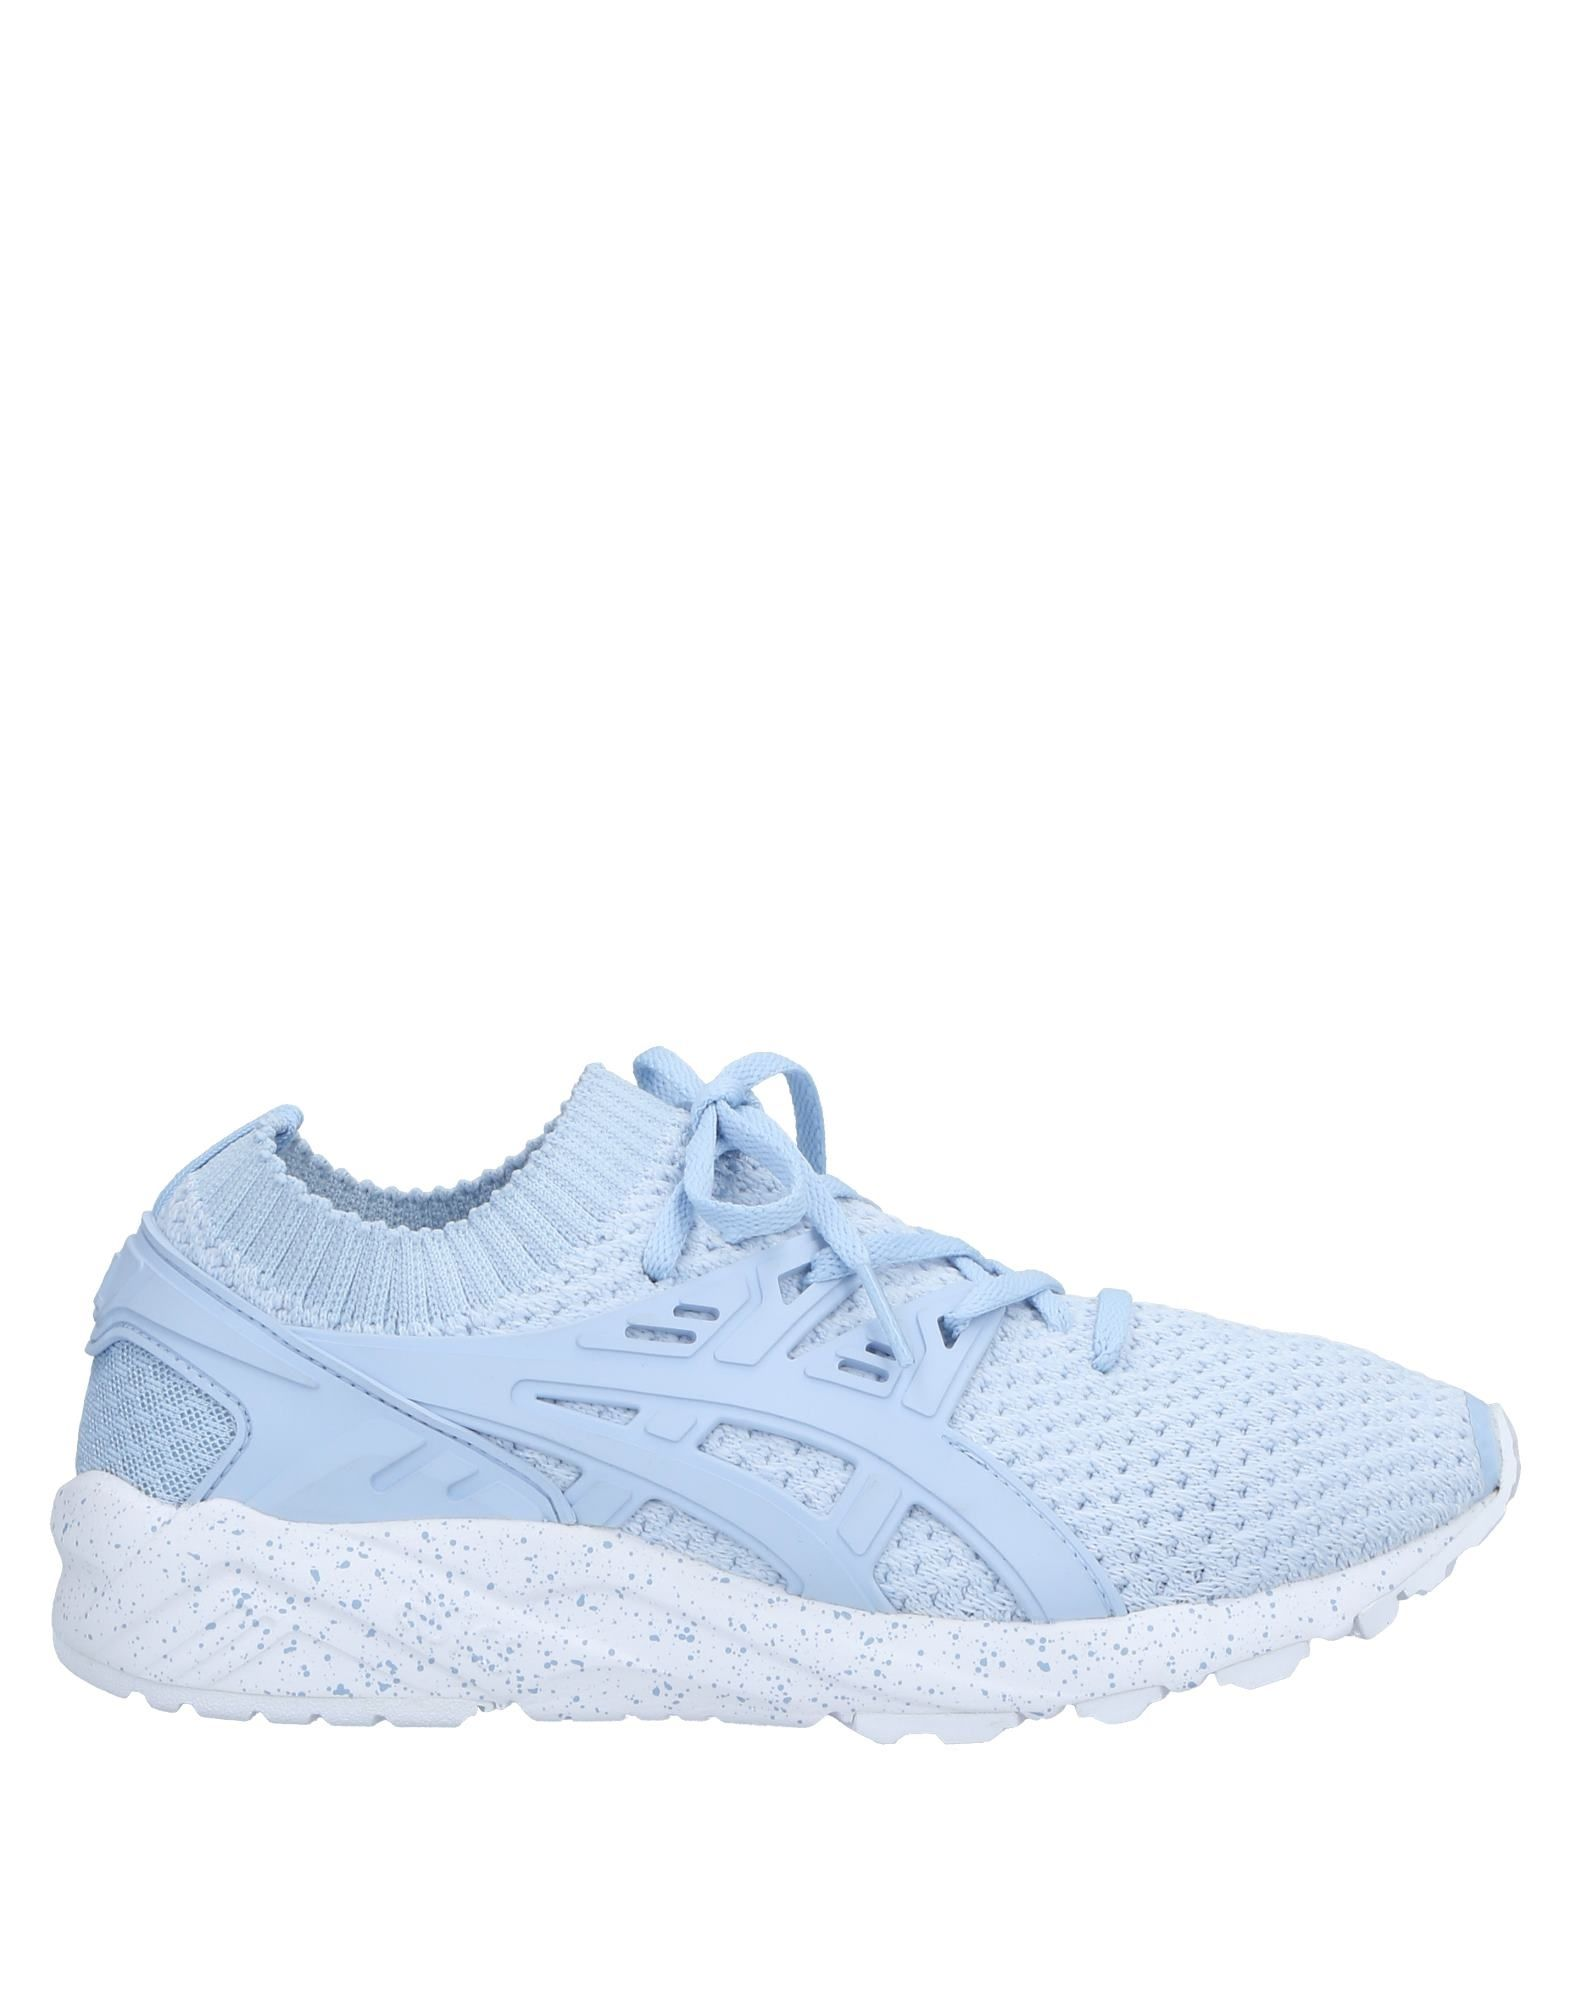 Sneakers Asics Tiger Donna - 11535823VL